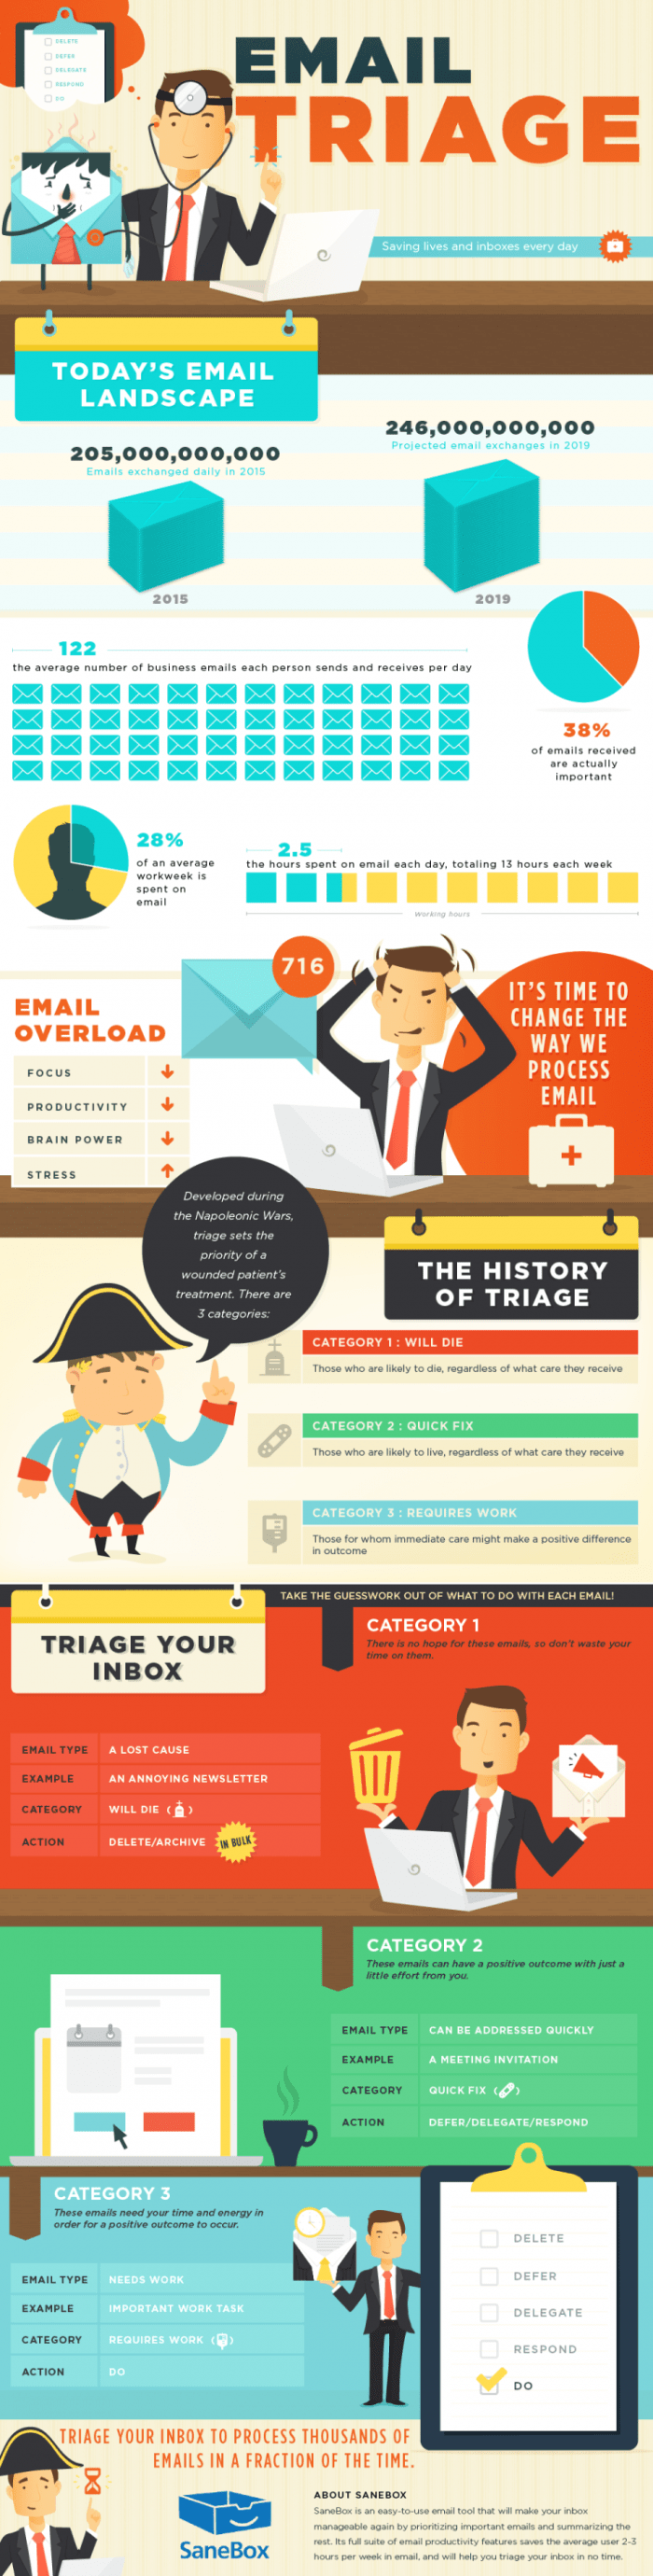 how to do an email triage